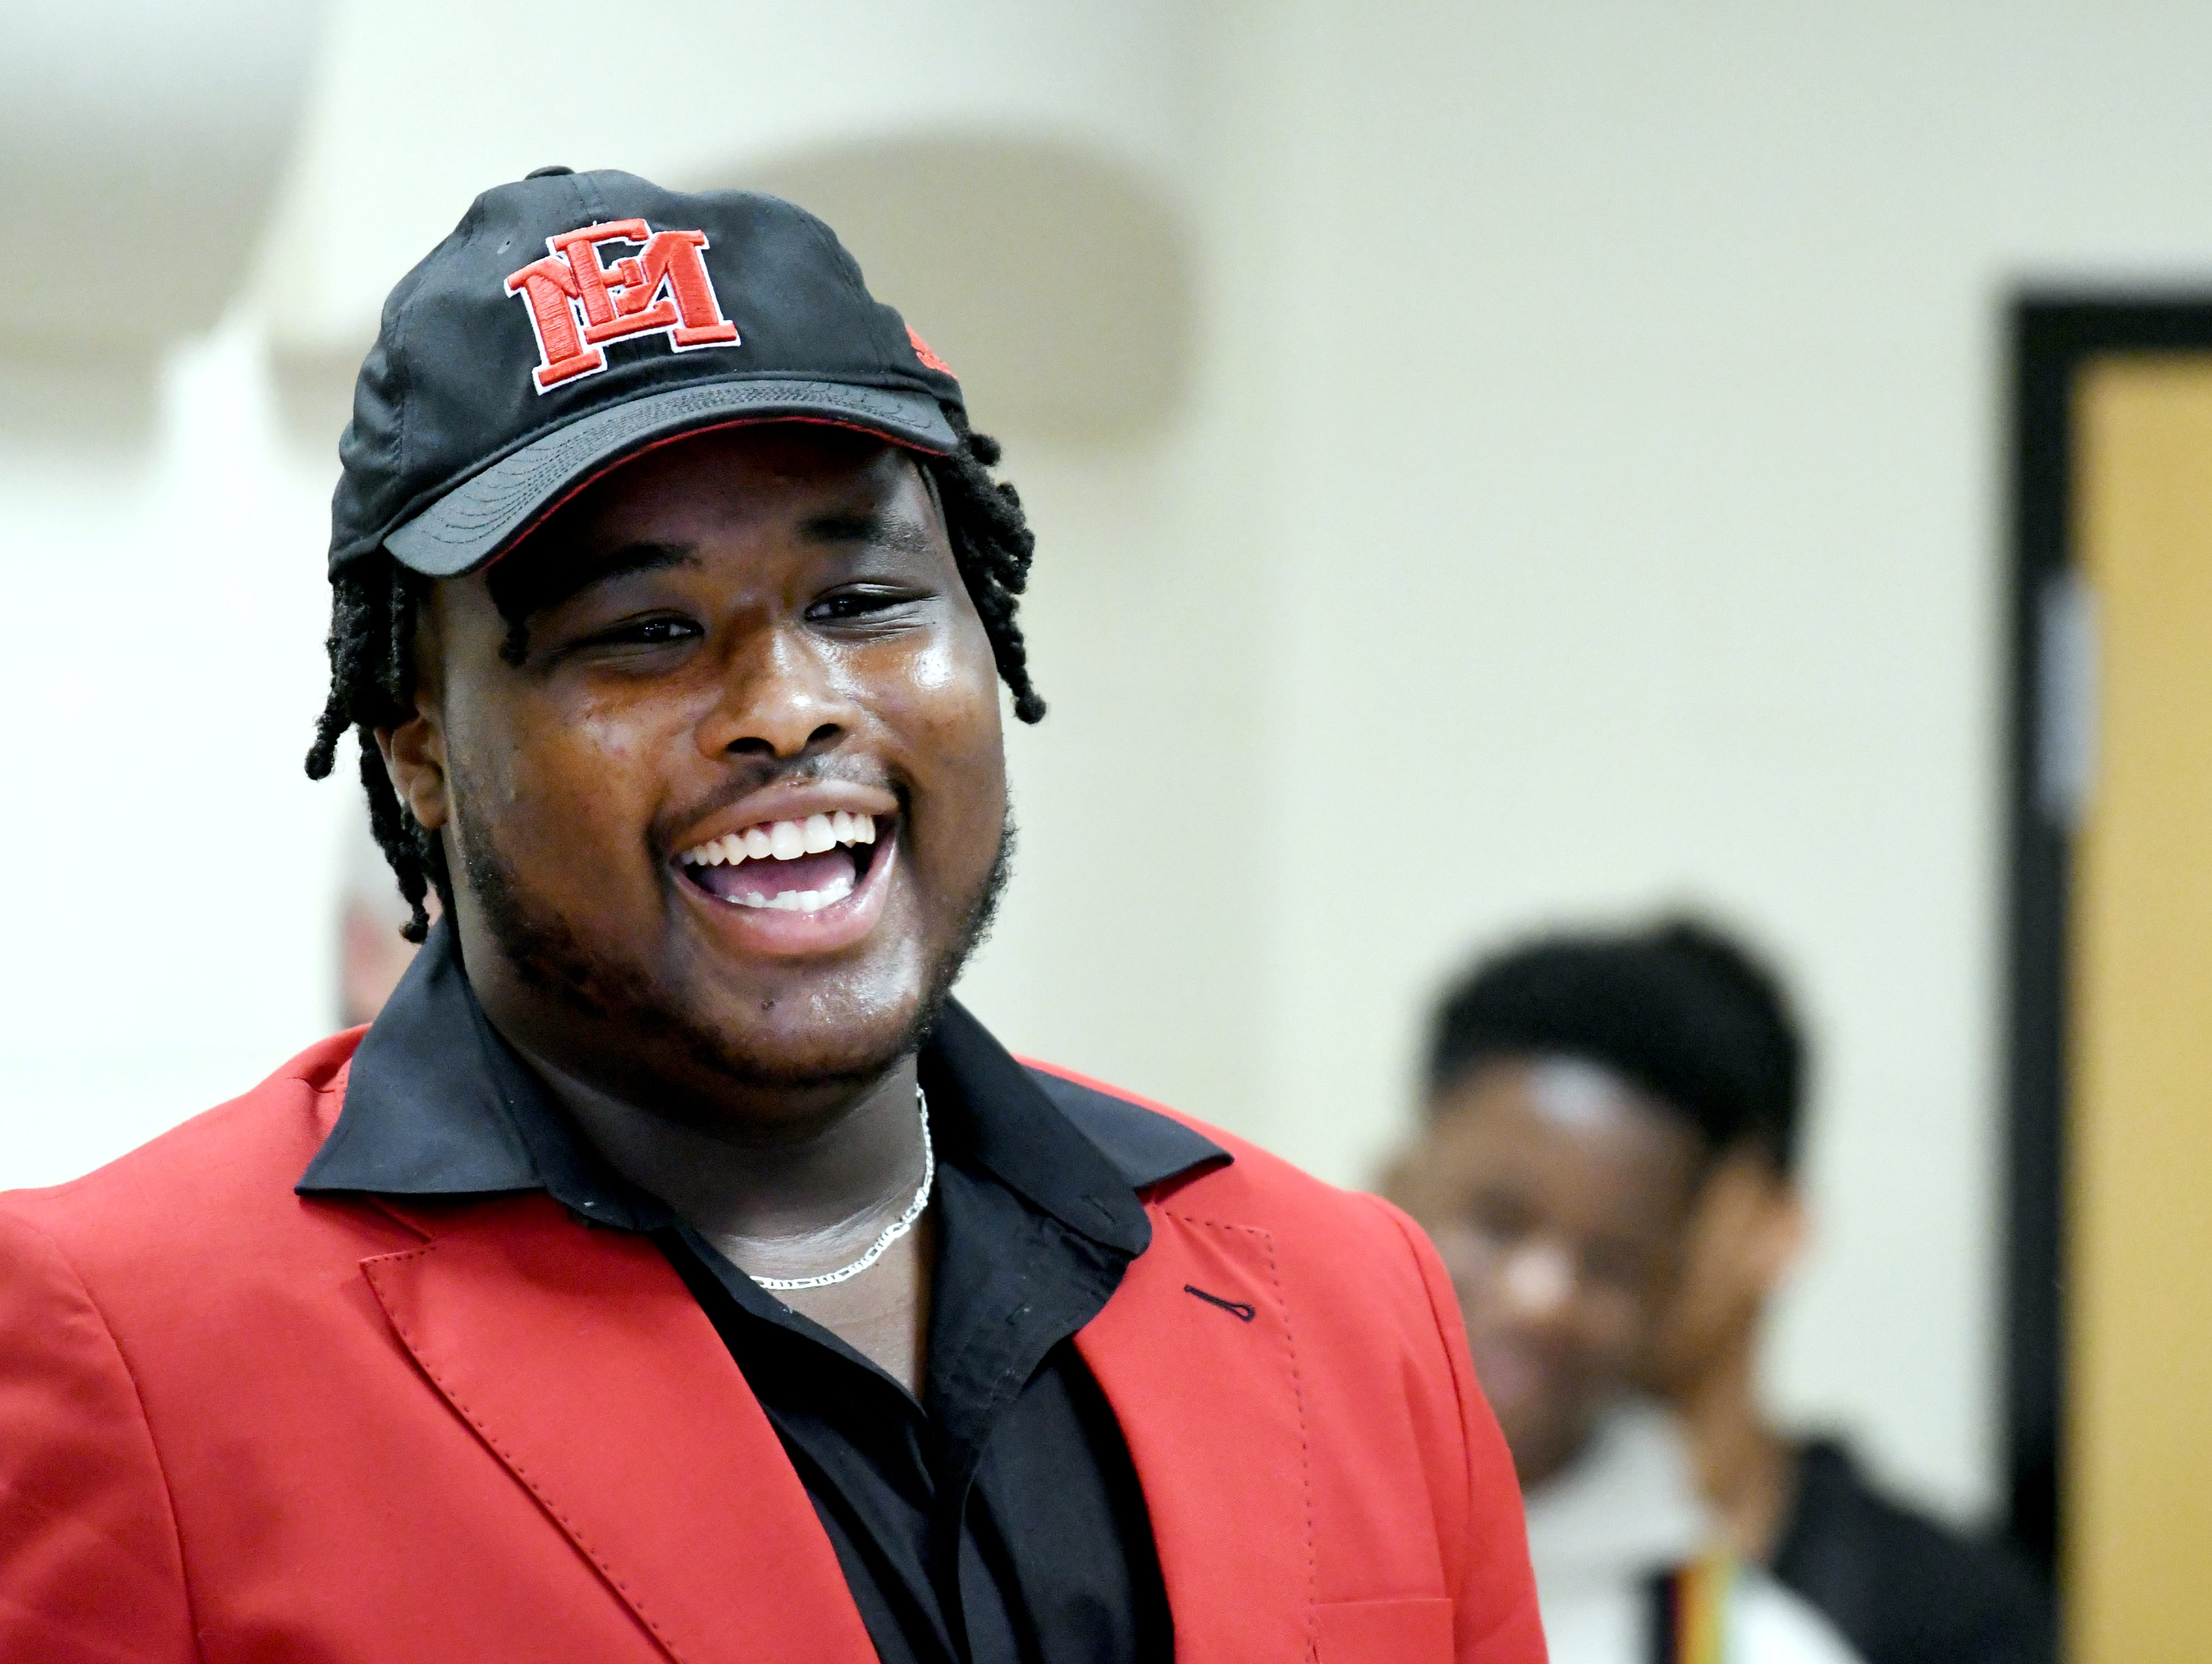 Oak Grove athlete Kaleb Carter commits to East Mississippi Community College during National Signing Day in Hattiesburg on Wednesday, February 6, 2019.